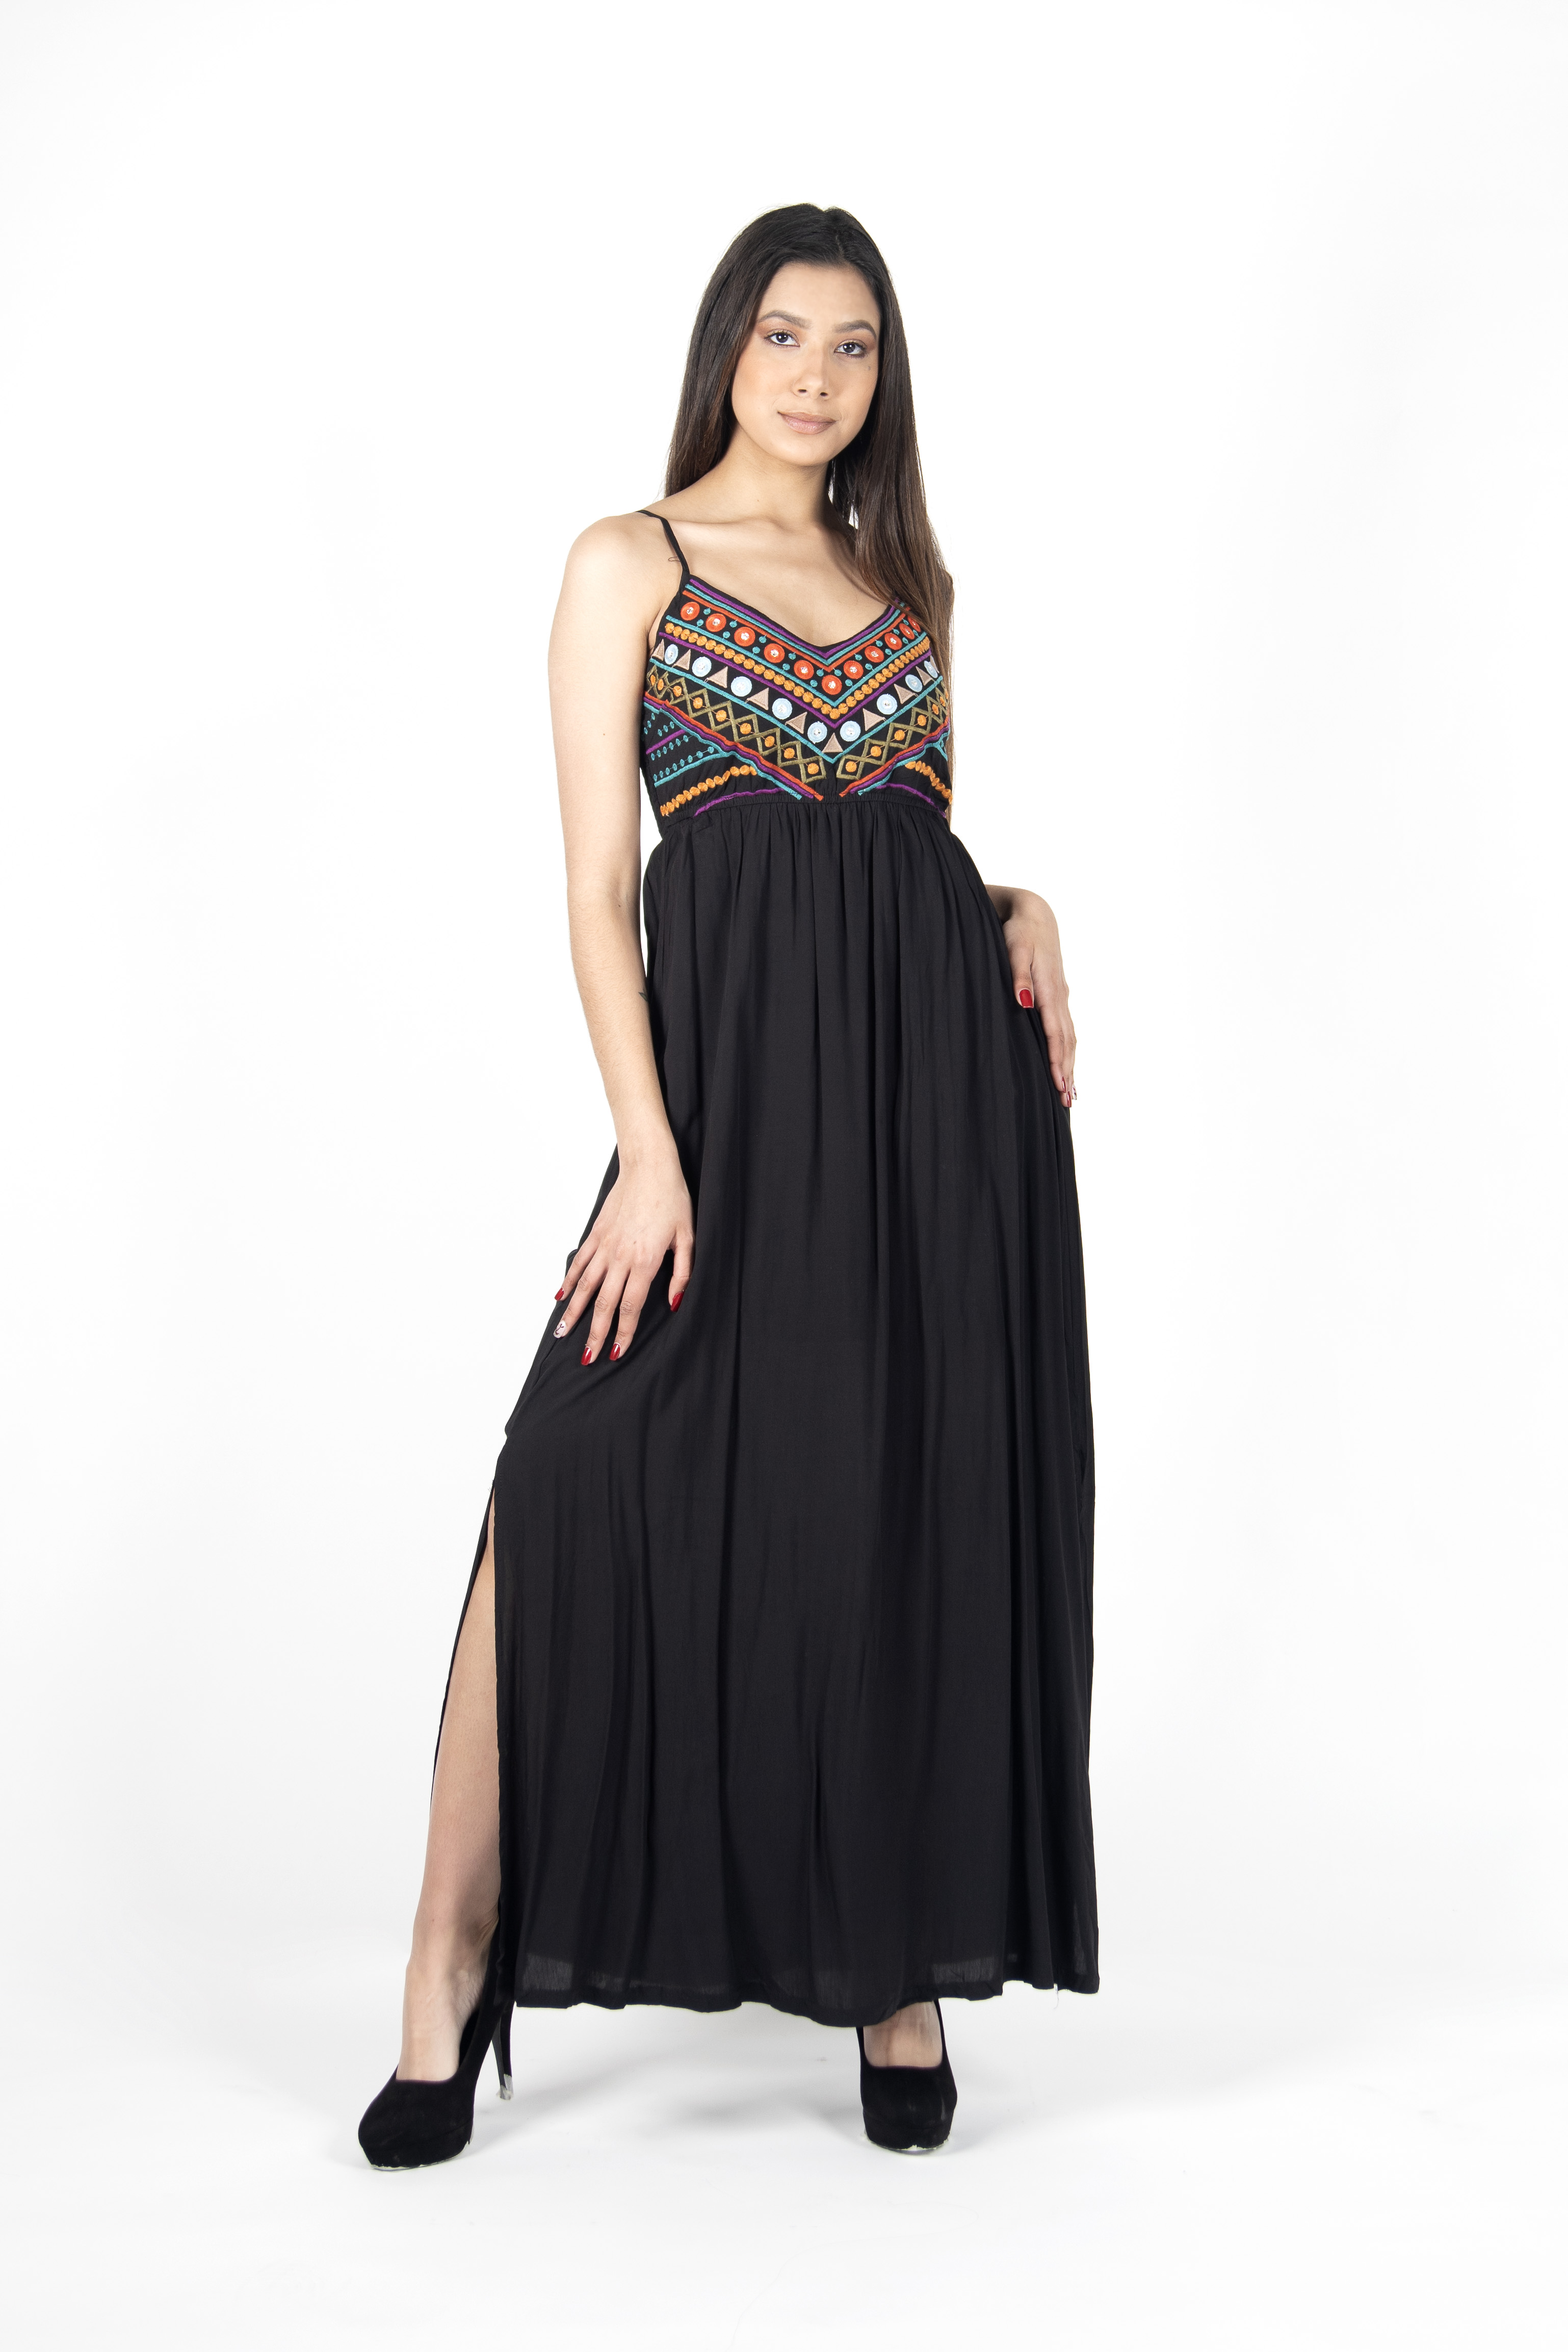 Maxidress con Bordados